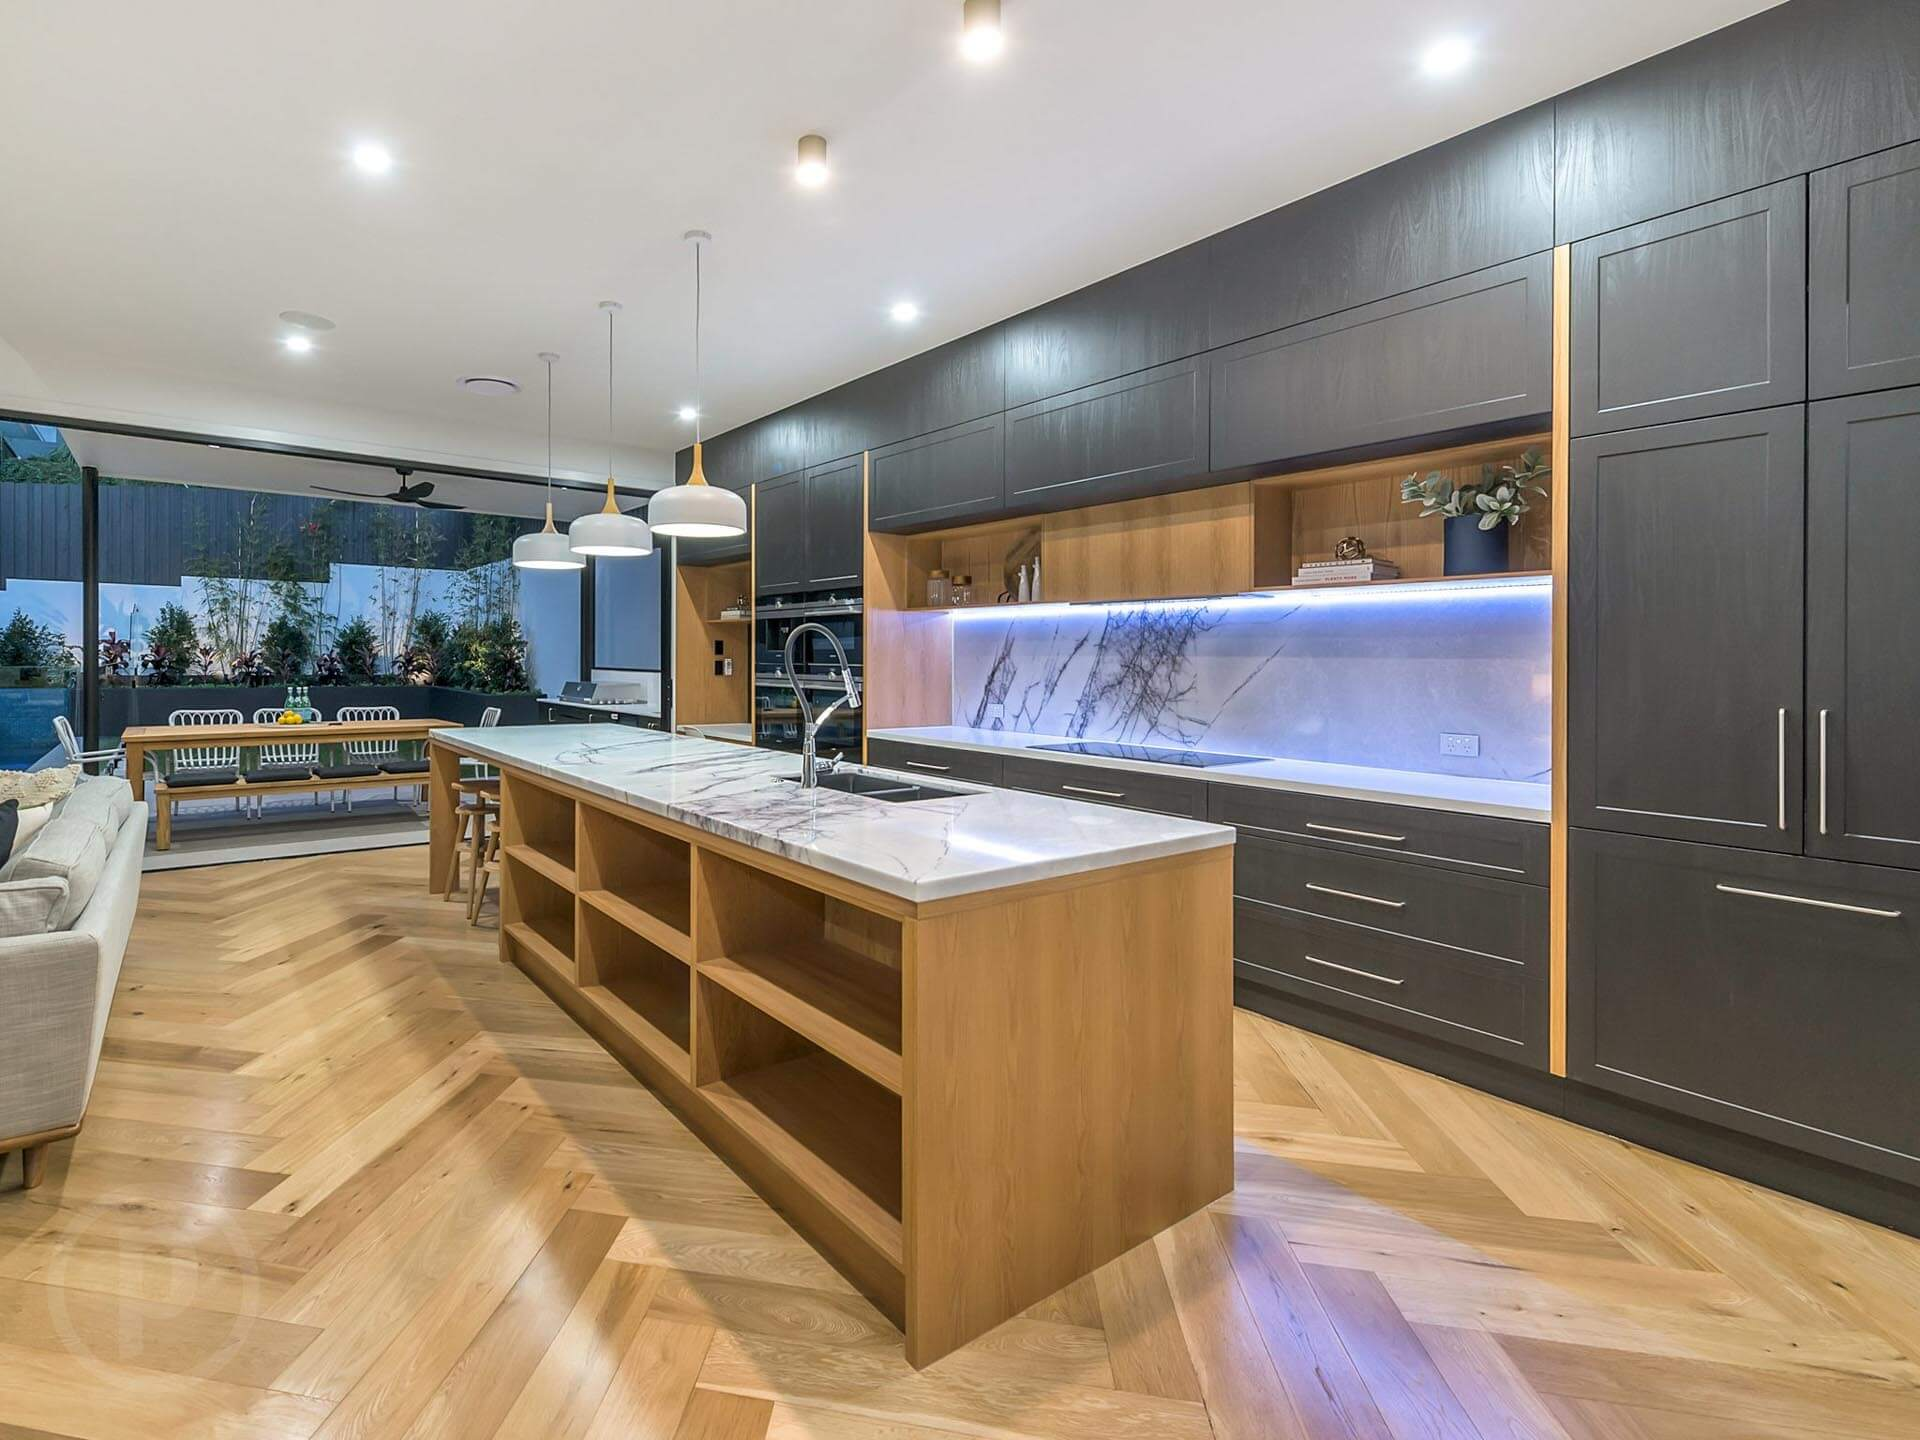 Kitchen Designs Brisbane Southside, Gold Coast - Kitchen ...